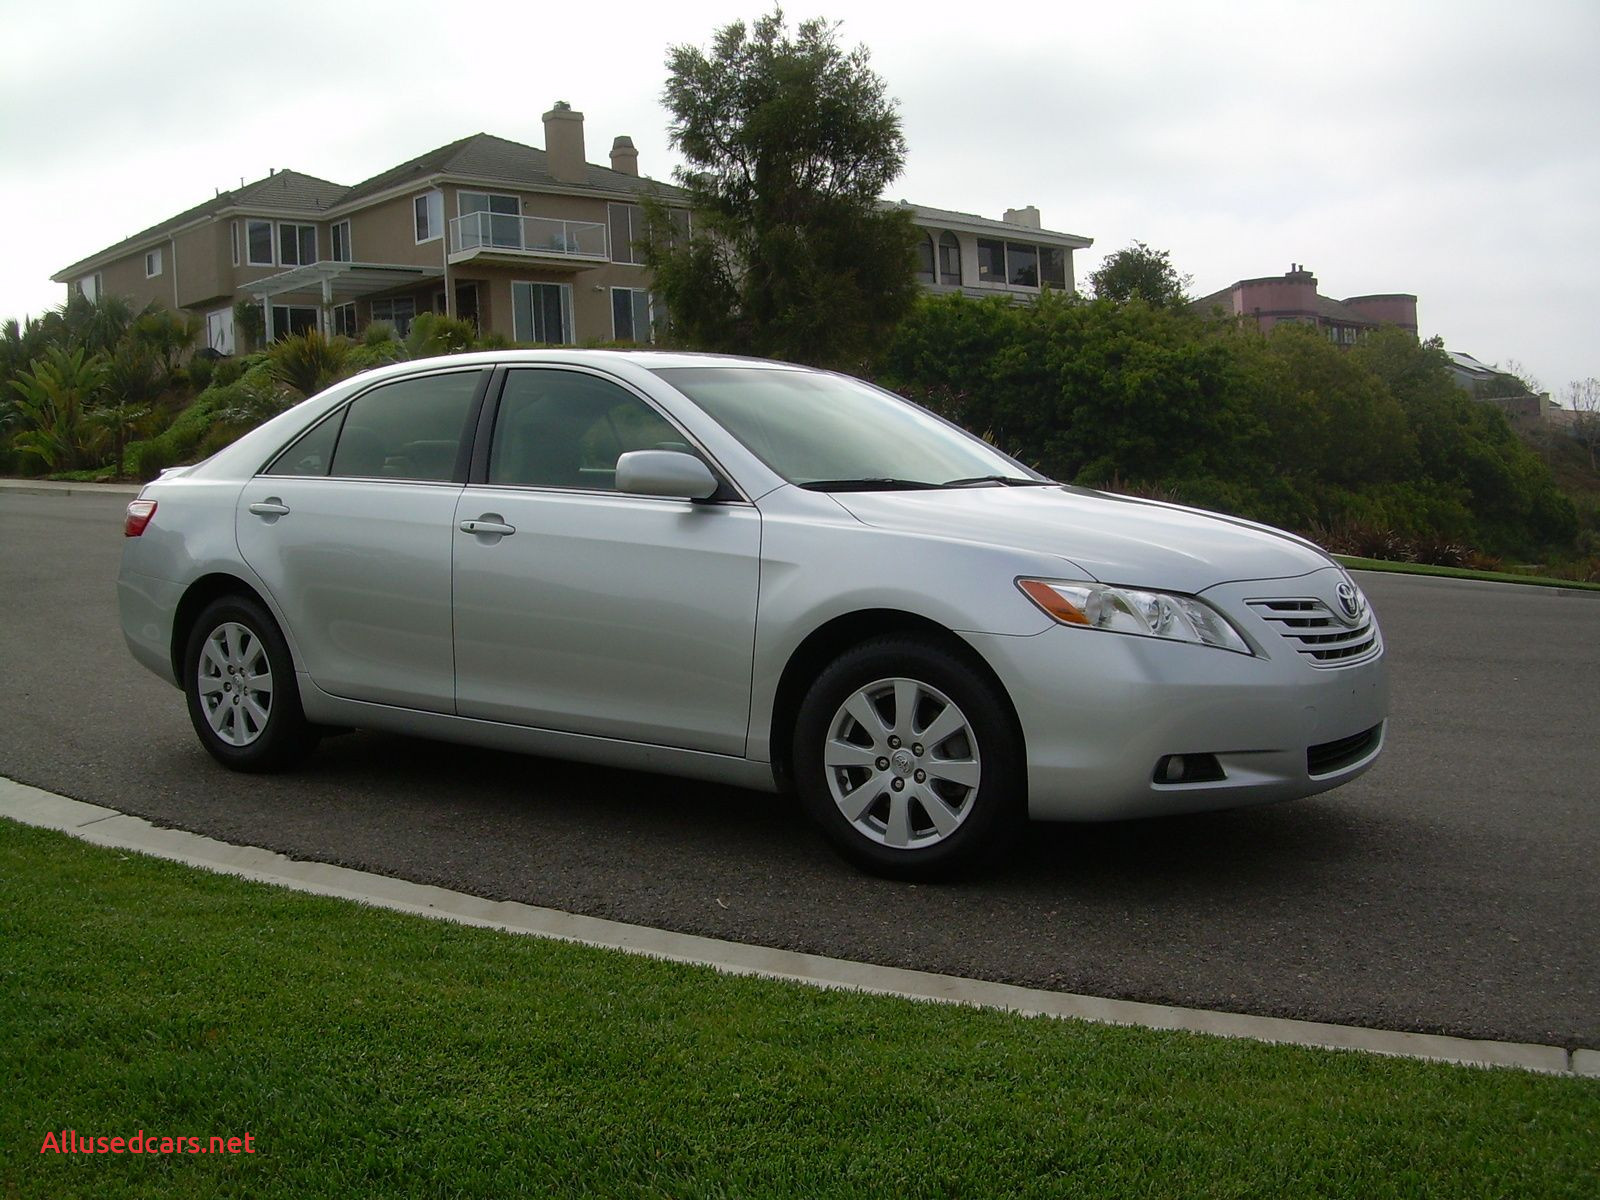 Camry 2007 Inspirational Pin by James Lee On Wallpaper